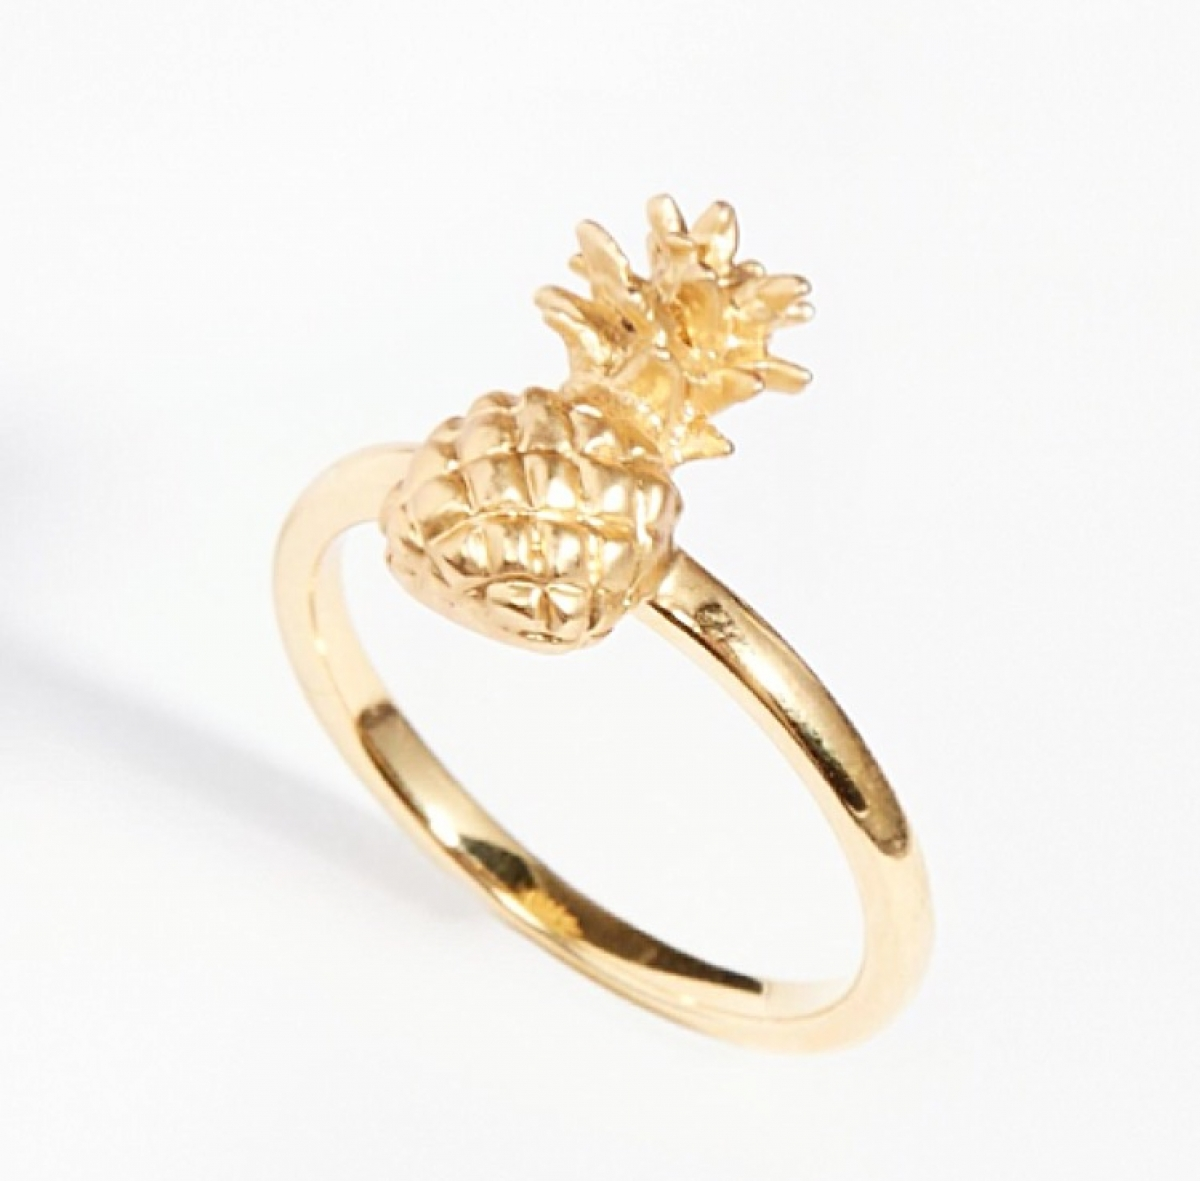 Pineapple Ring - Large Size Only